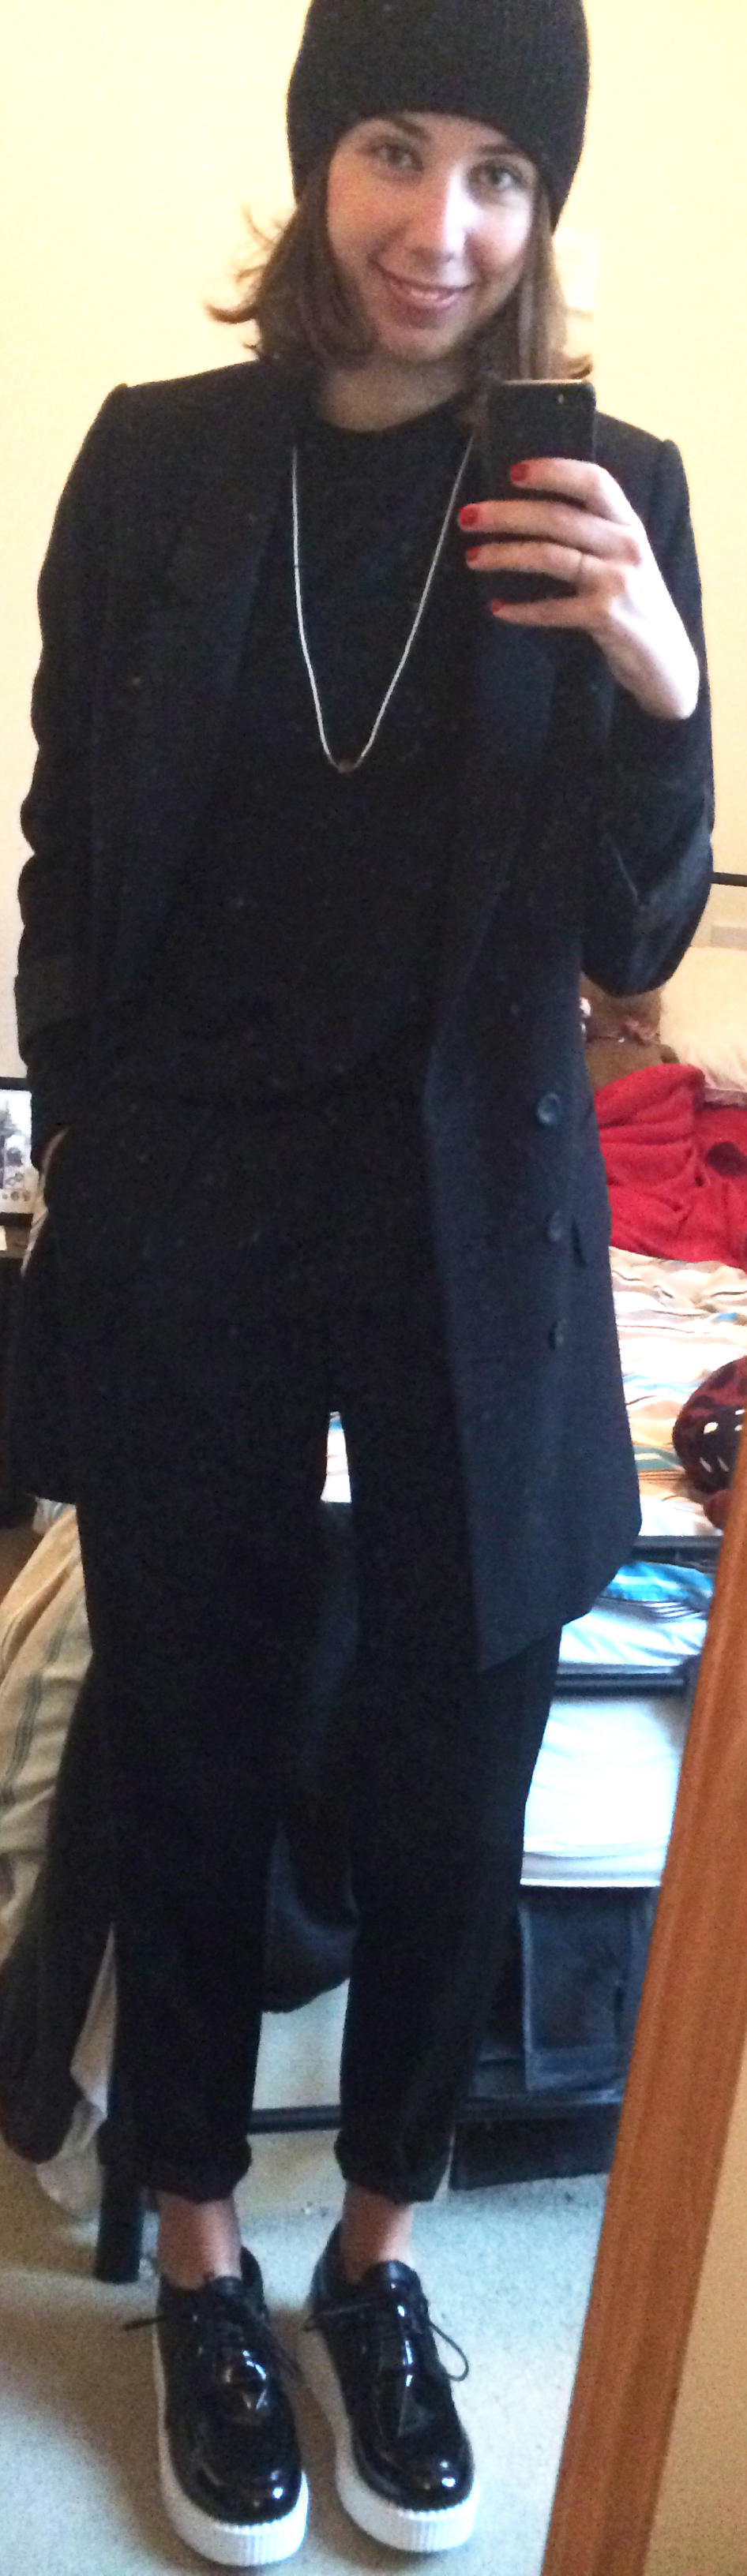 Patent Leather Creepers ,  Black Trousers ,  Mikkat Market Sweater ,  Navy Pea Coat